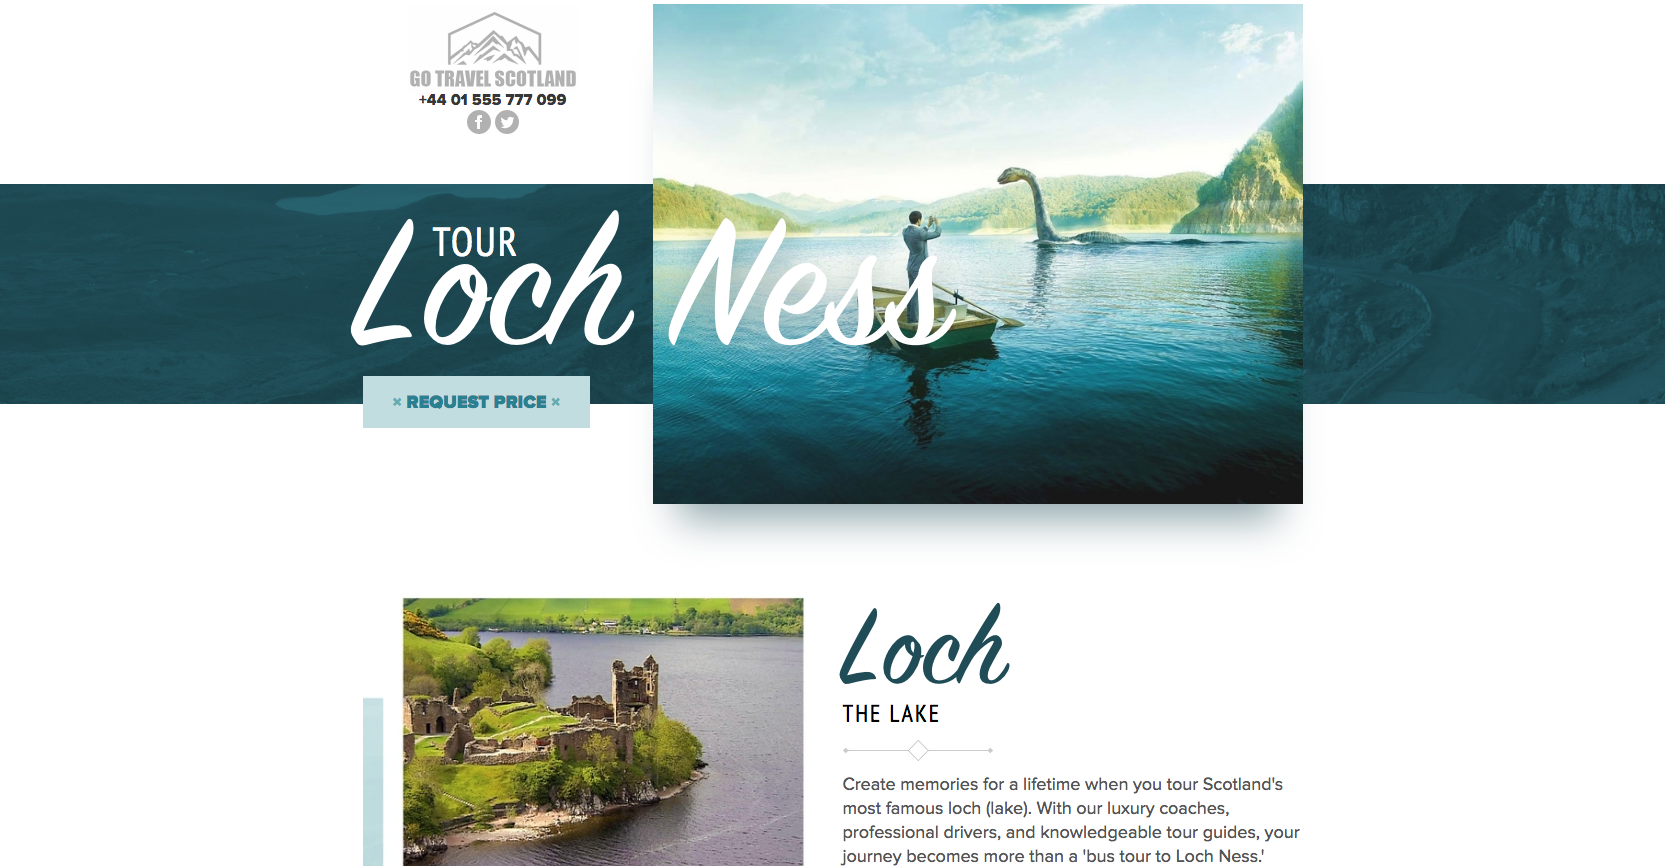 Tour Loch Ness website